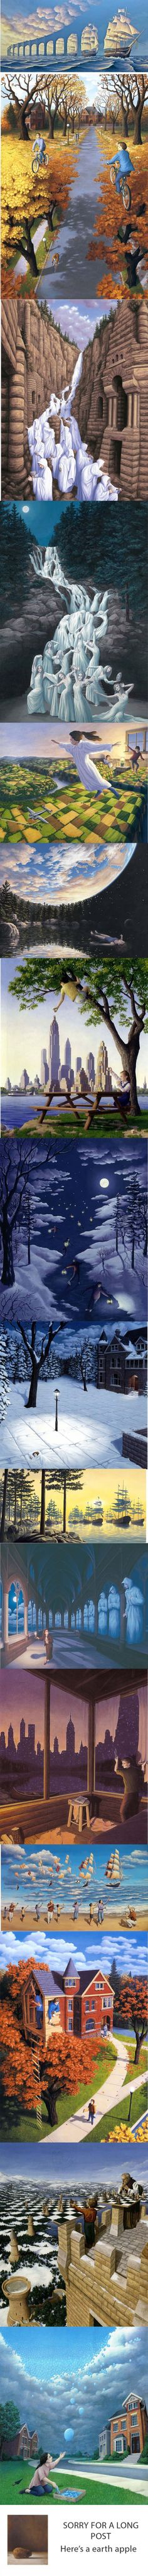 Some of Canadian artist's Rob Gonsalves artwork. When you see it... - 9GAG